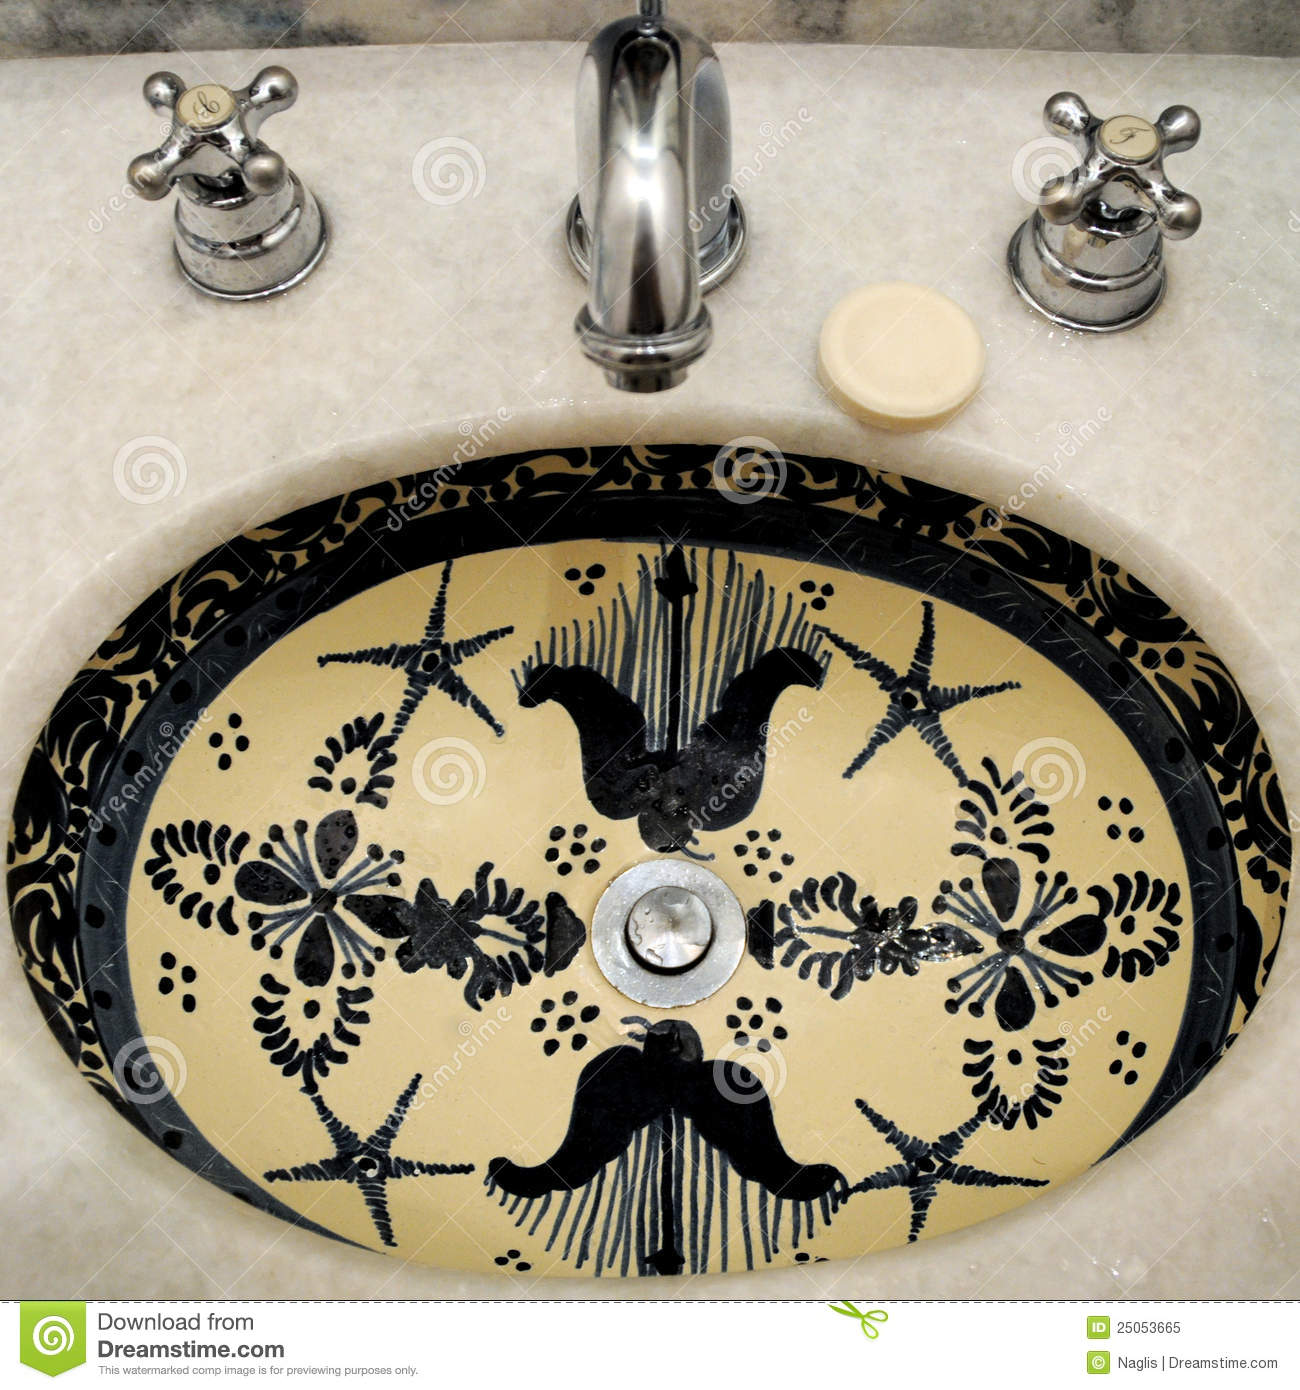 painted sinks in the bathroom painted bathroom sink royalty free stock photo image 23929